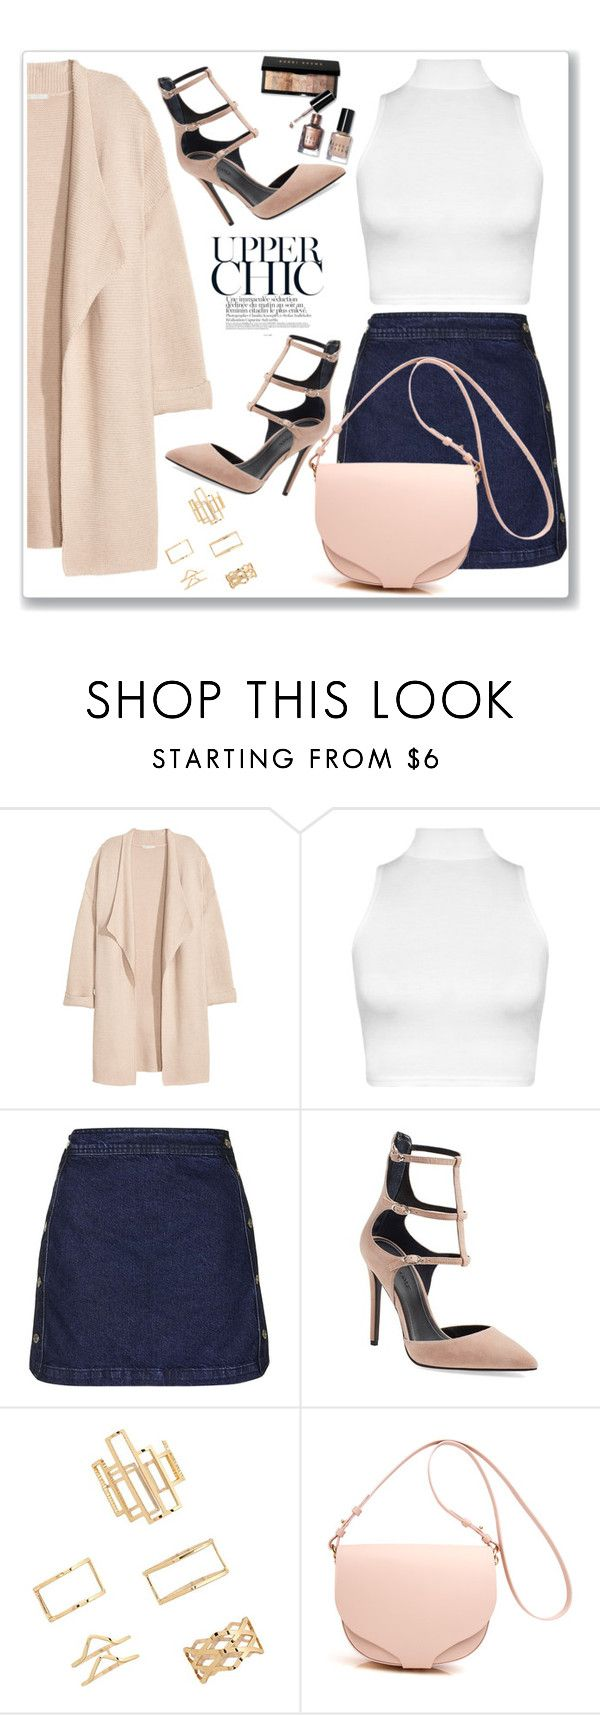 """""""Upper Chic"""" by christinacastro830 ❤ liked on Polyvore featuring Kofta, WearAll, Topshop, Kendall + Kylie, Forever 21, women's clothing, women, female, woman and misses"""